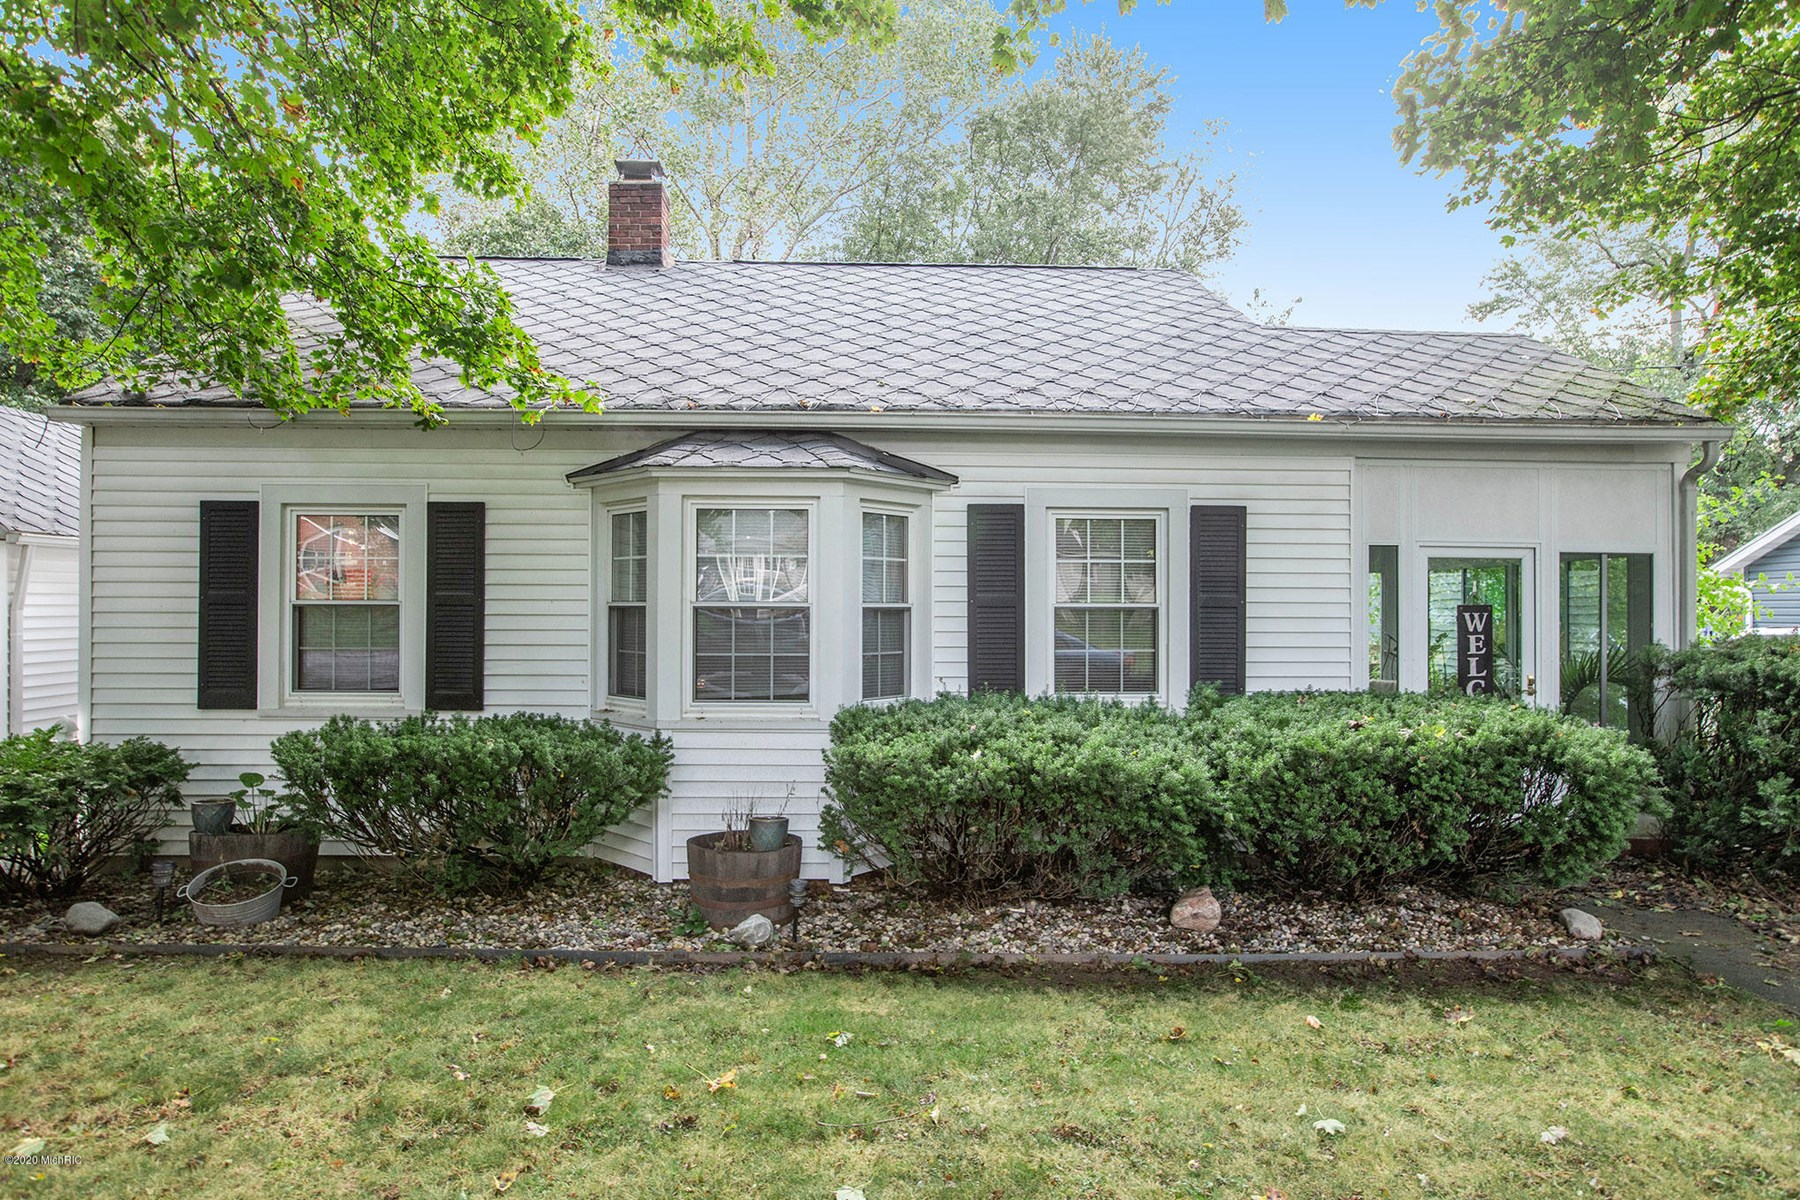 Updated and attractive Westwood Cape Cod home in Kalamazoo